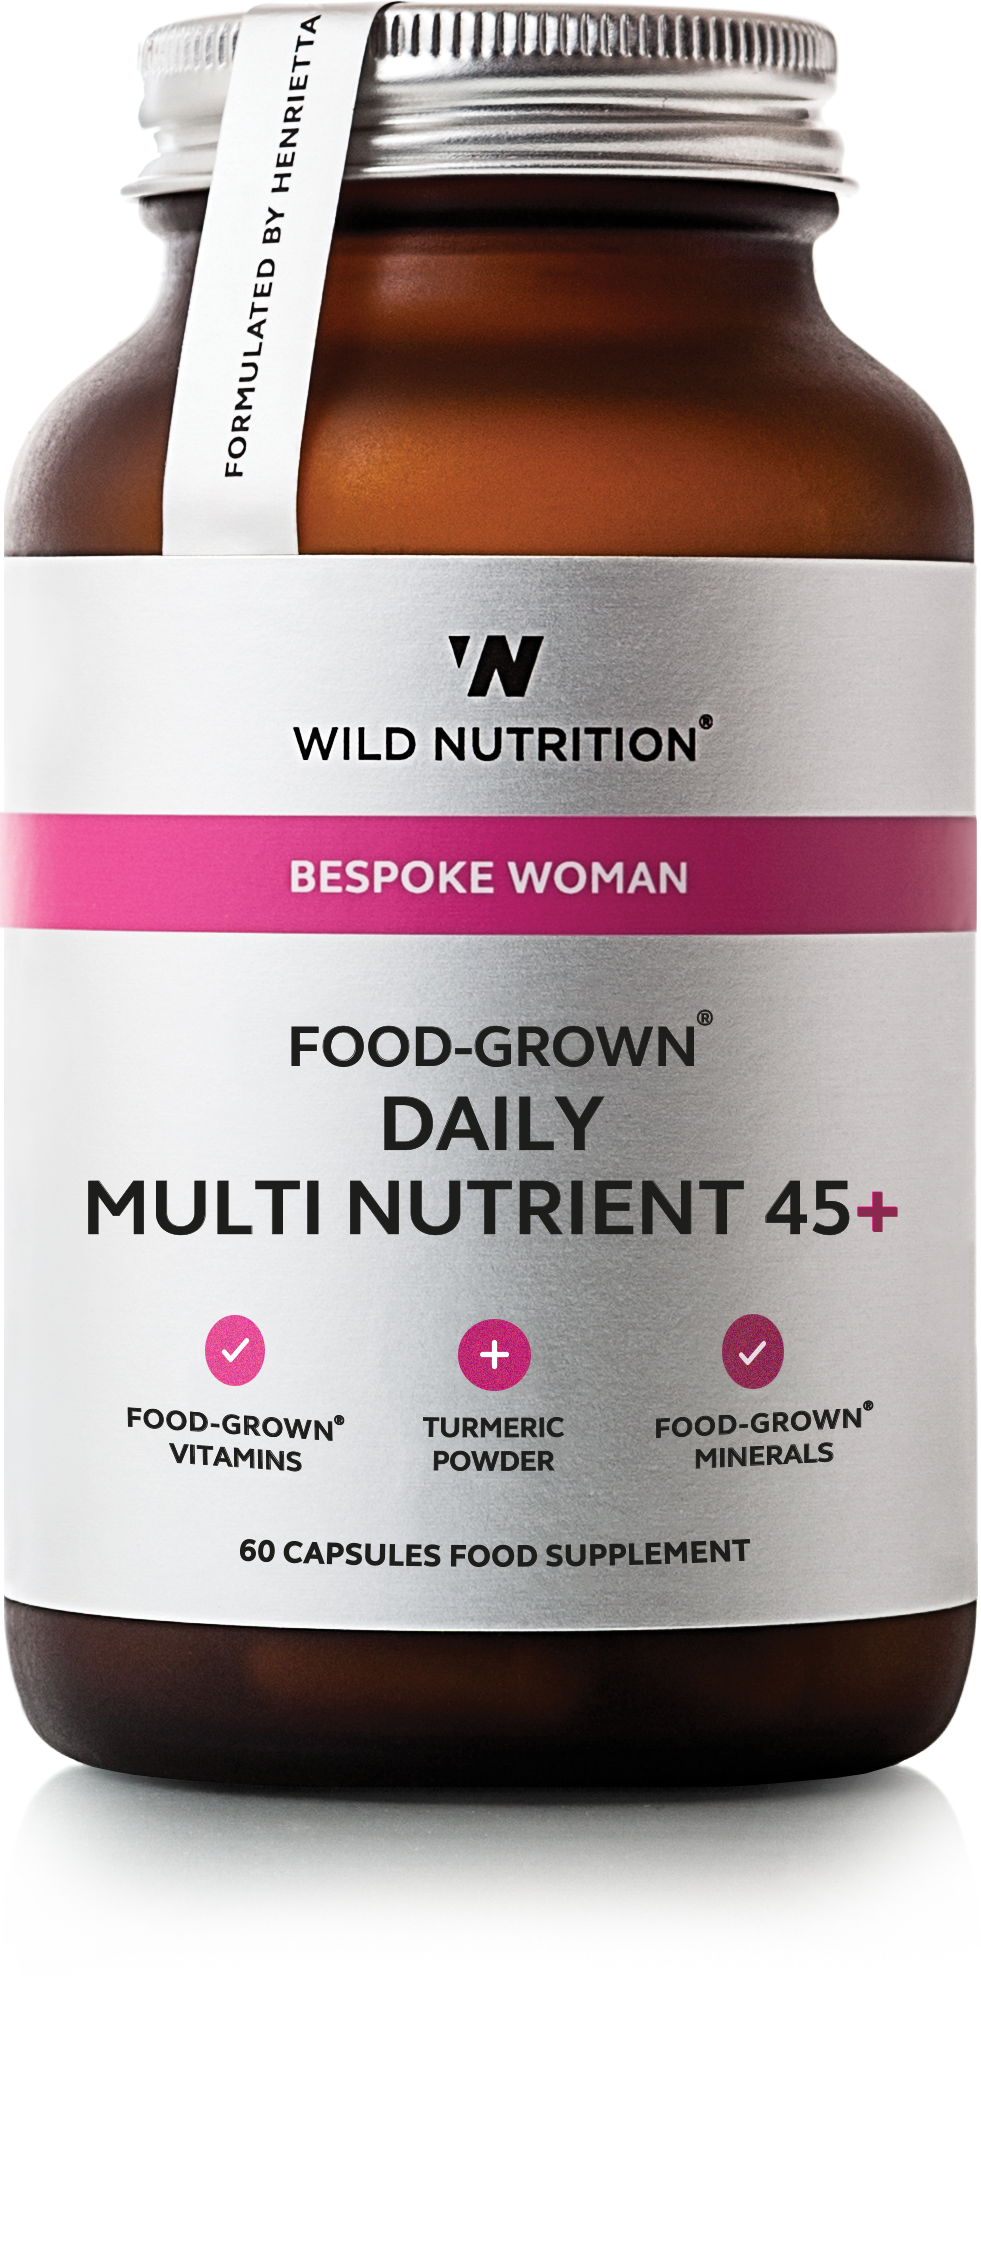 FOOD-GROWN® Daily Multi Nutrient 45+ - 60 caps